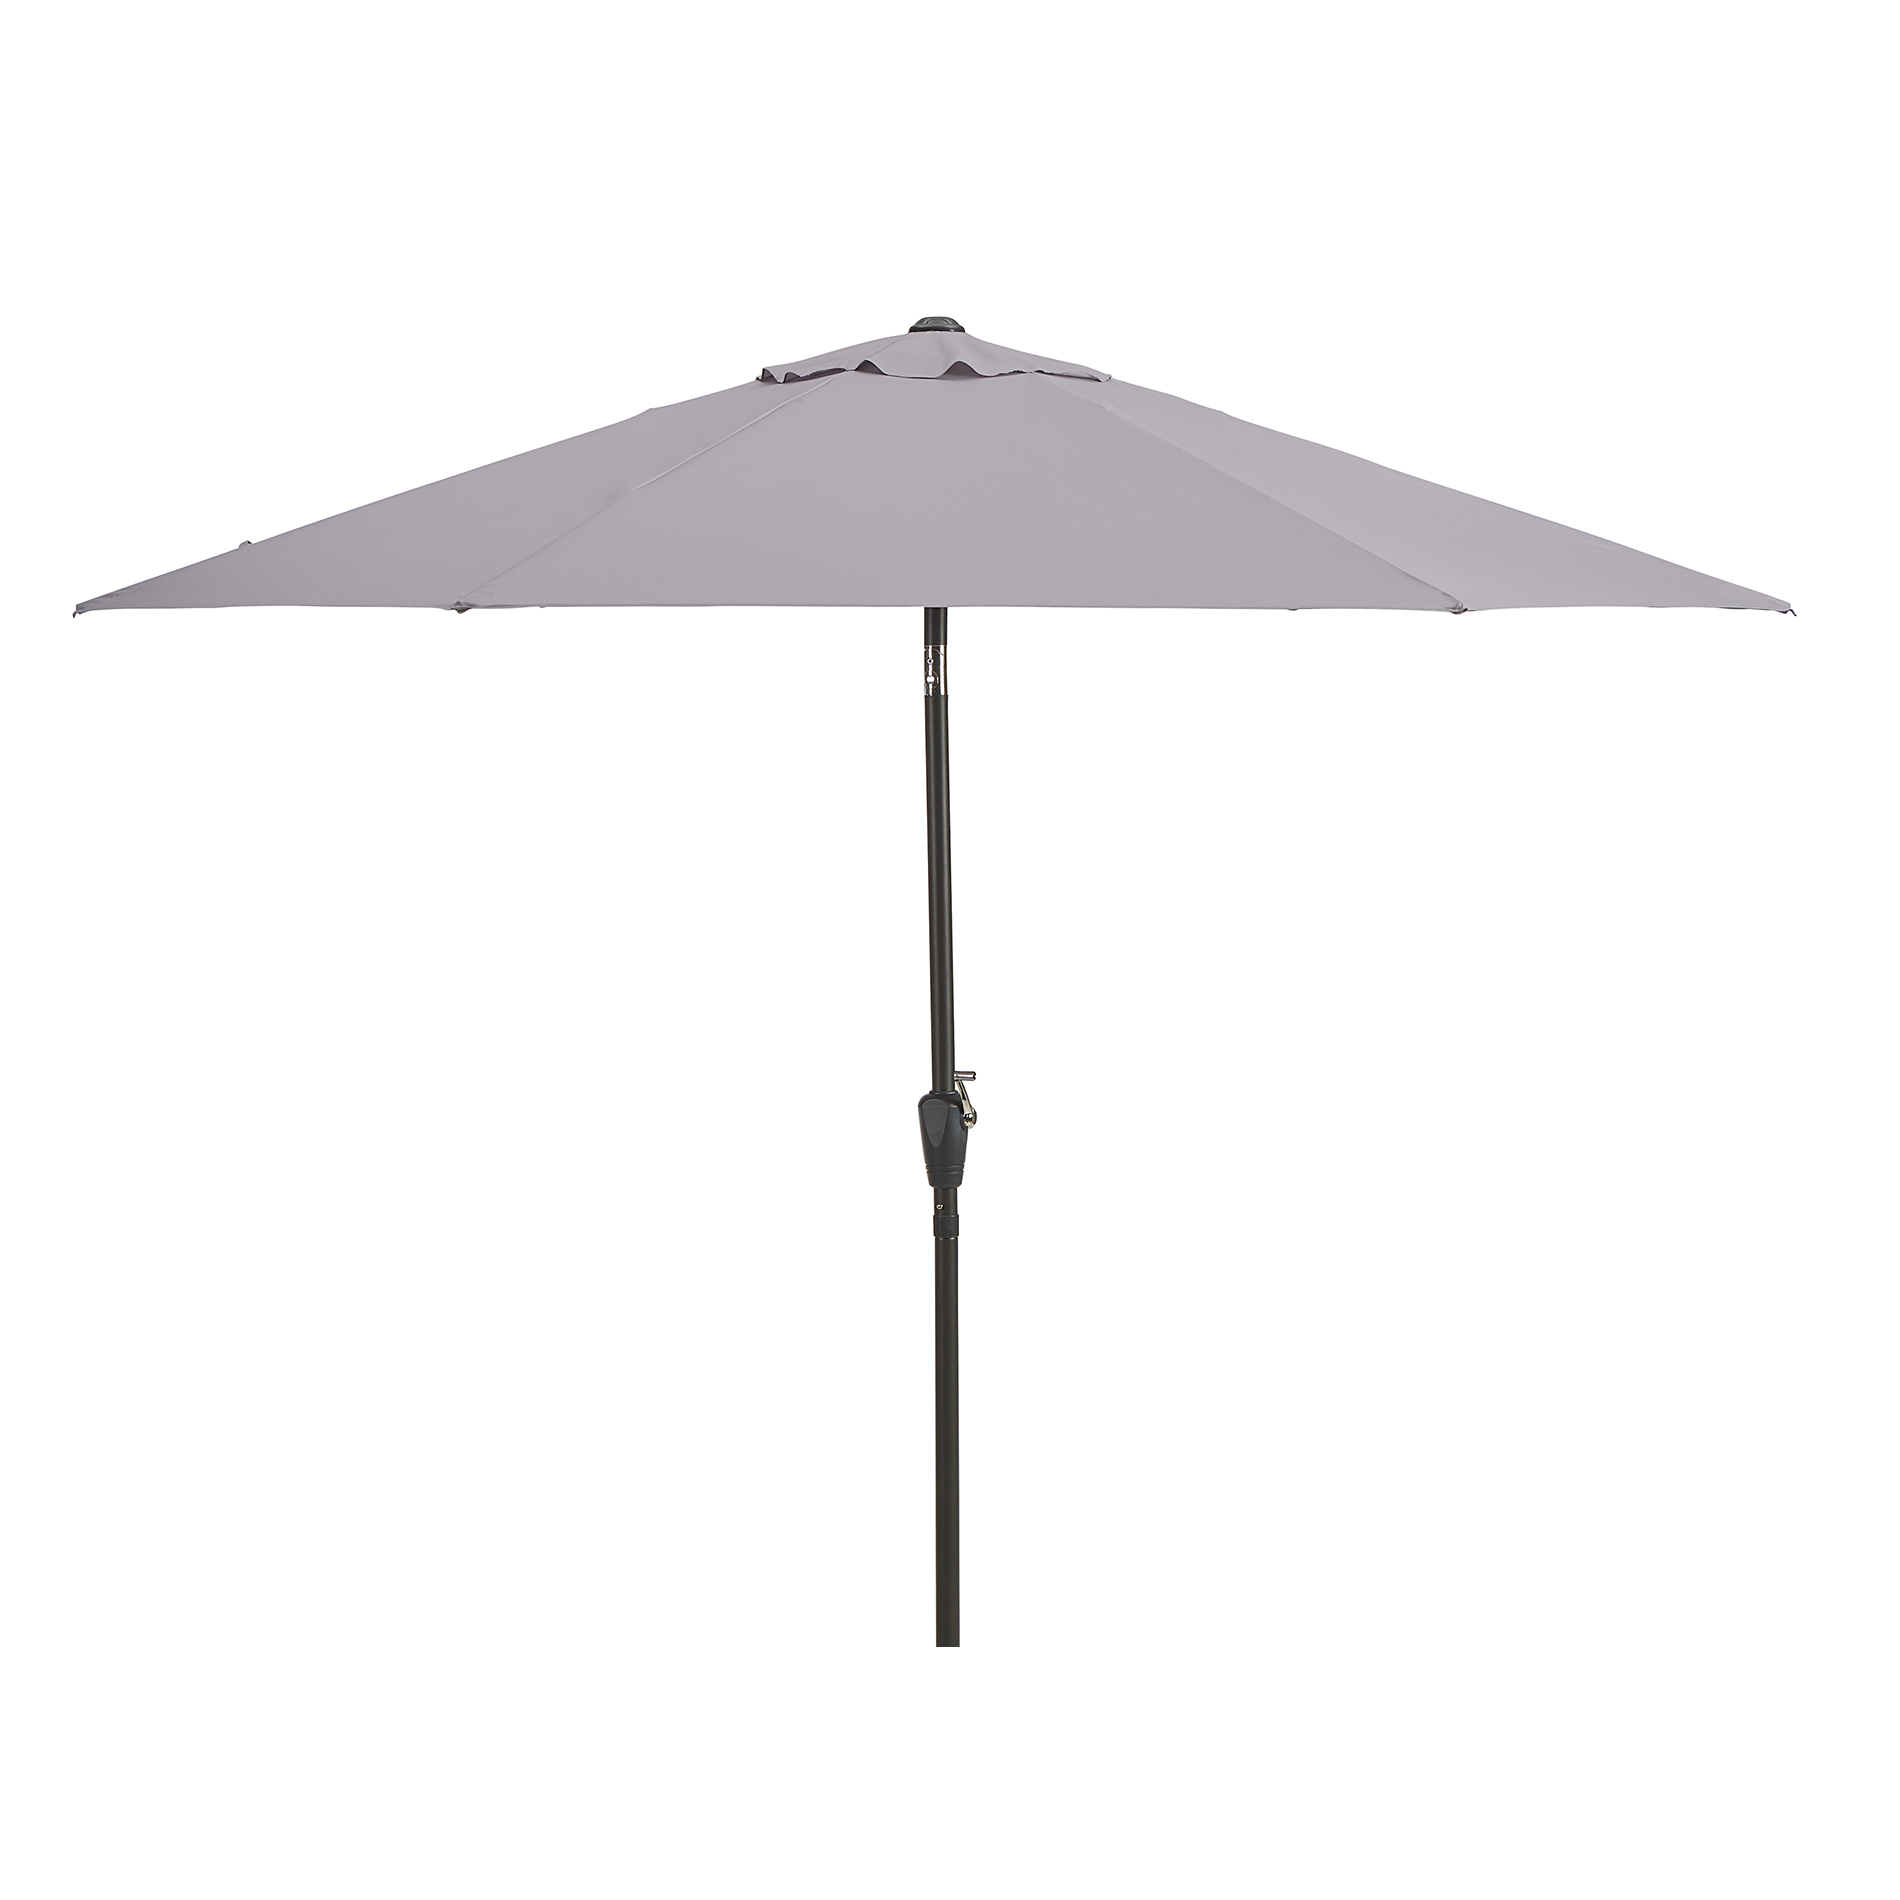 Garden Oasis 9' Patio Umbrella - Gray